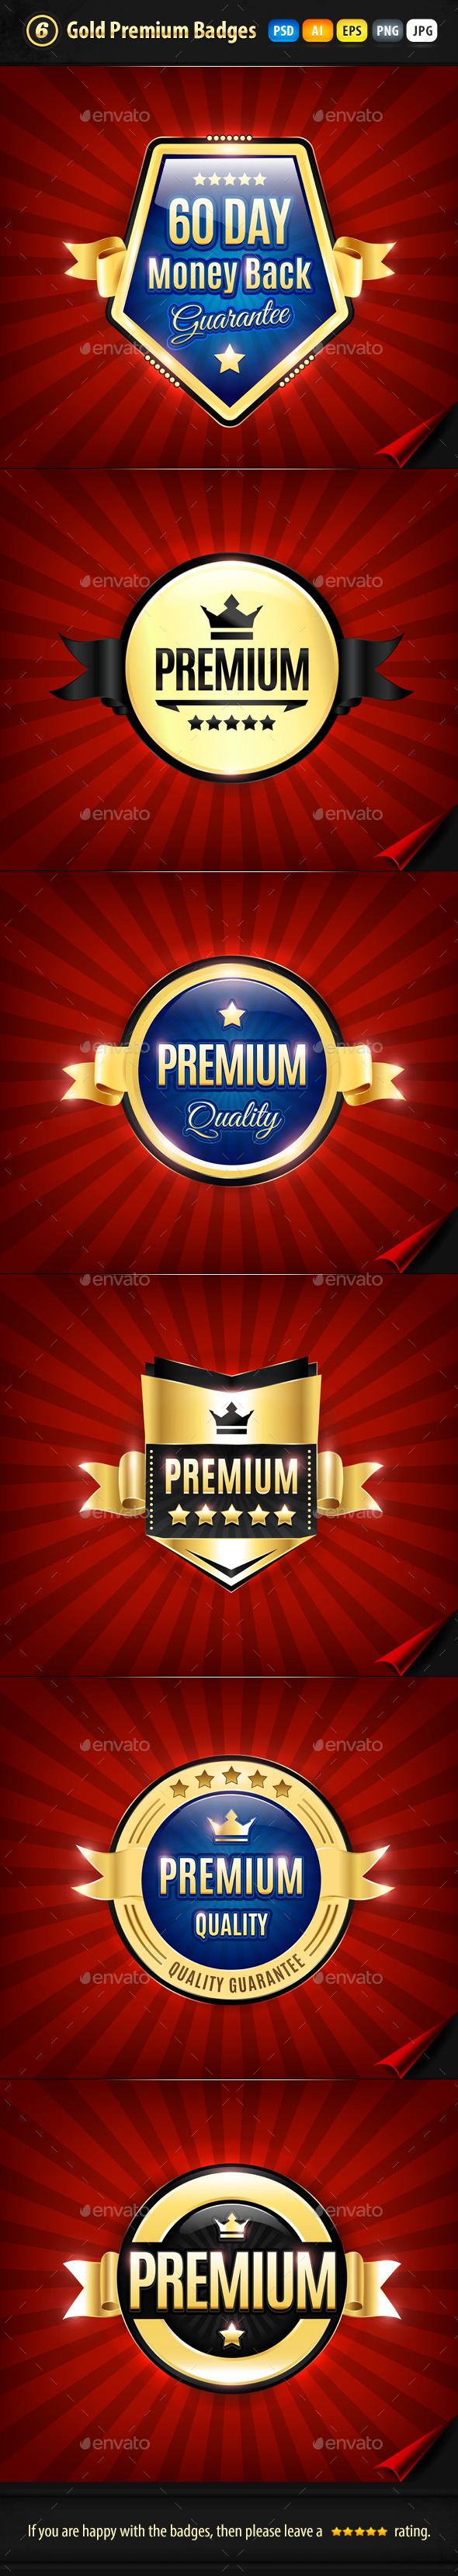 6 Gold Premium Quality Badges